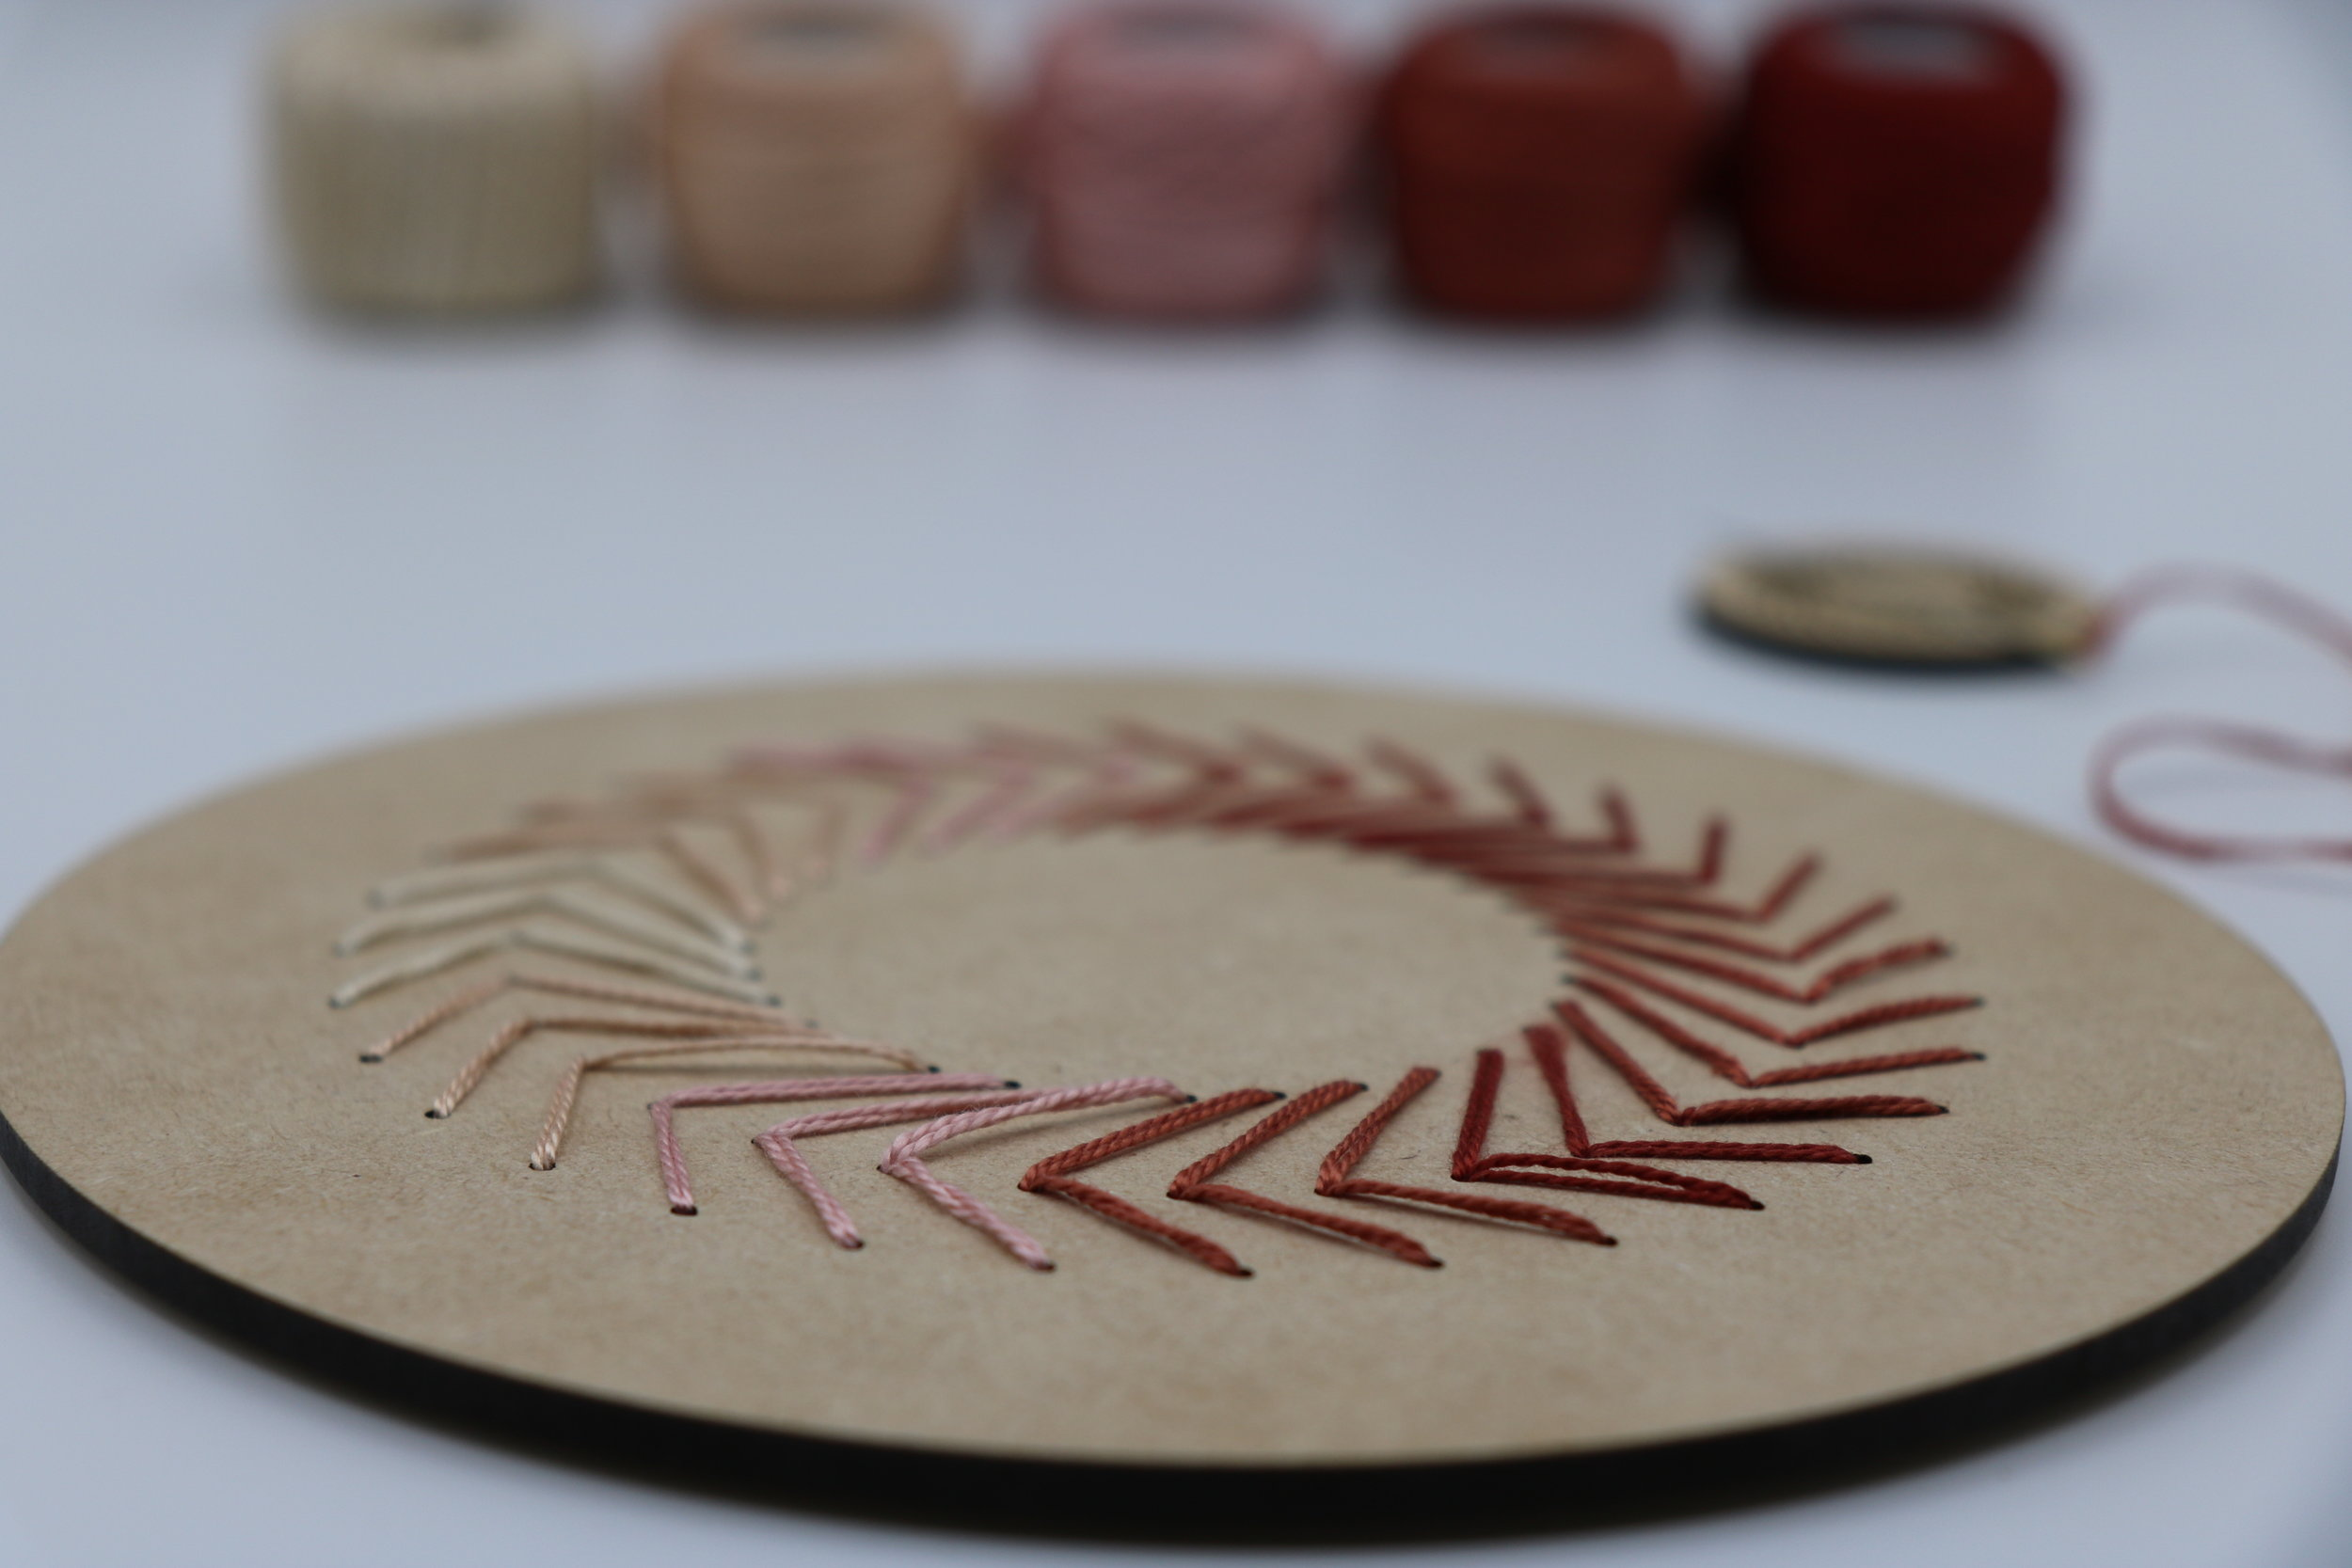 Wooden Embroidery Hoop and Needle Minder using a design from  Steph Skardal .